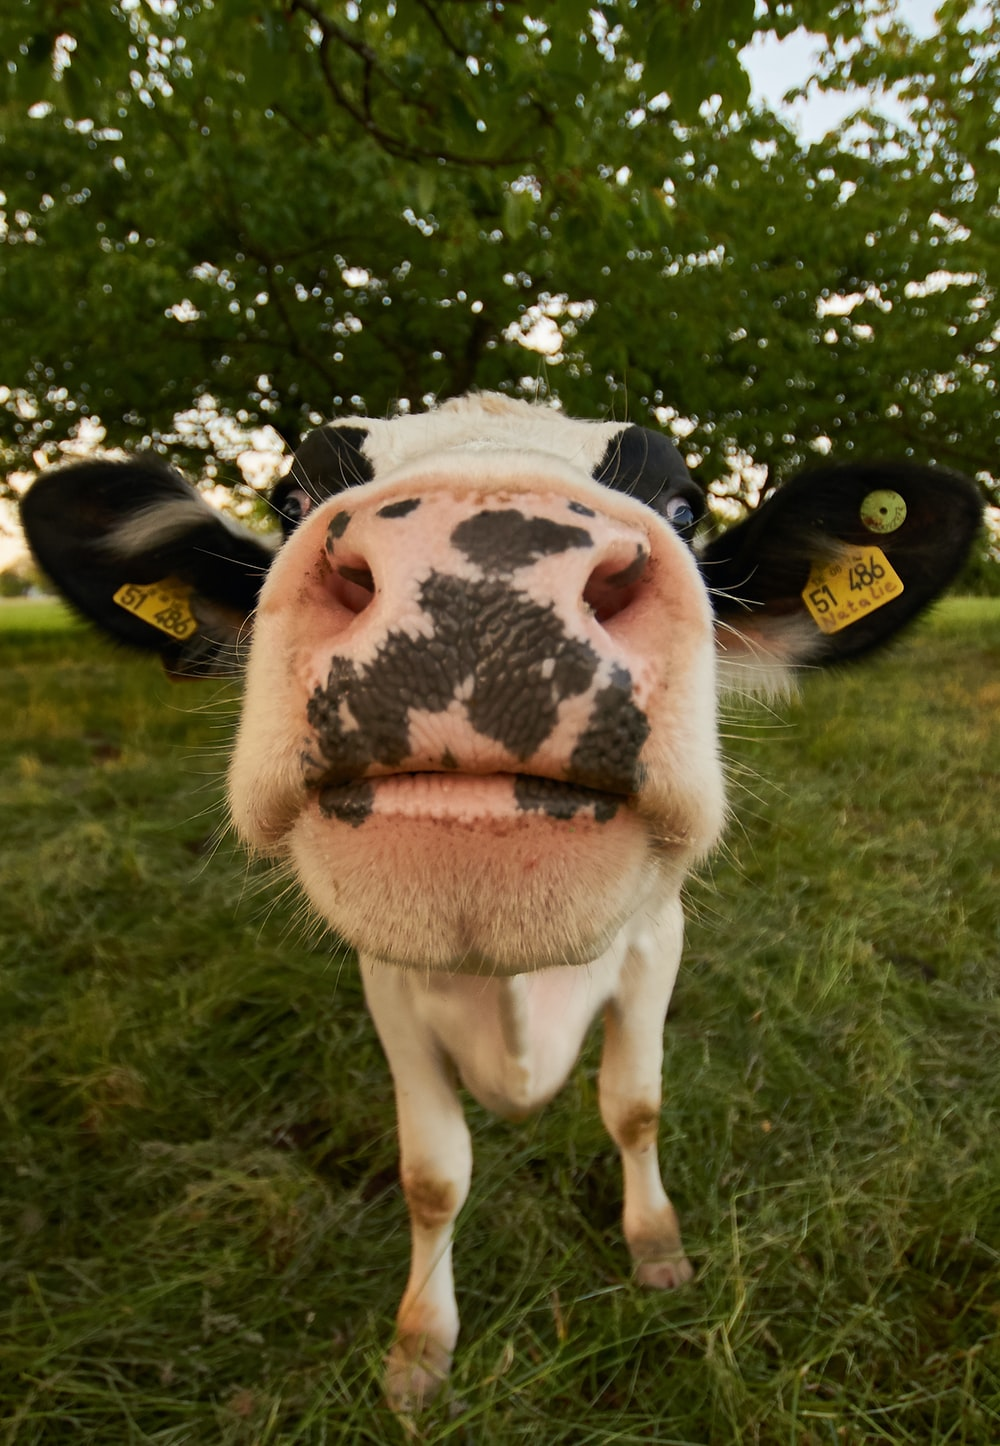 Cow in your face